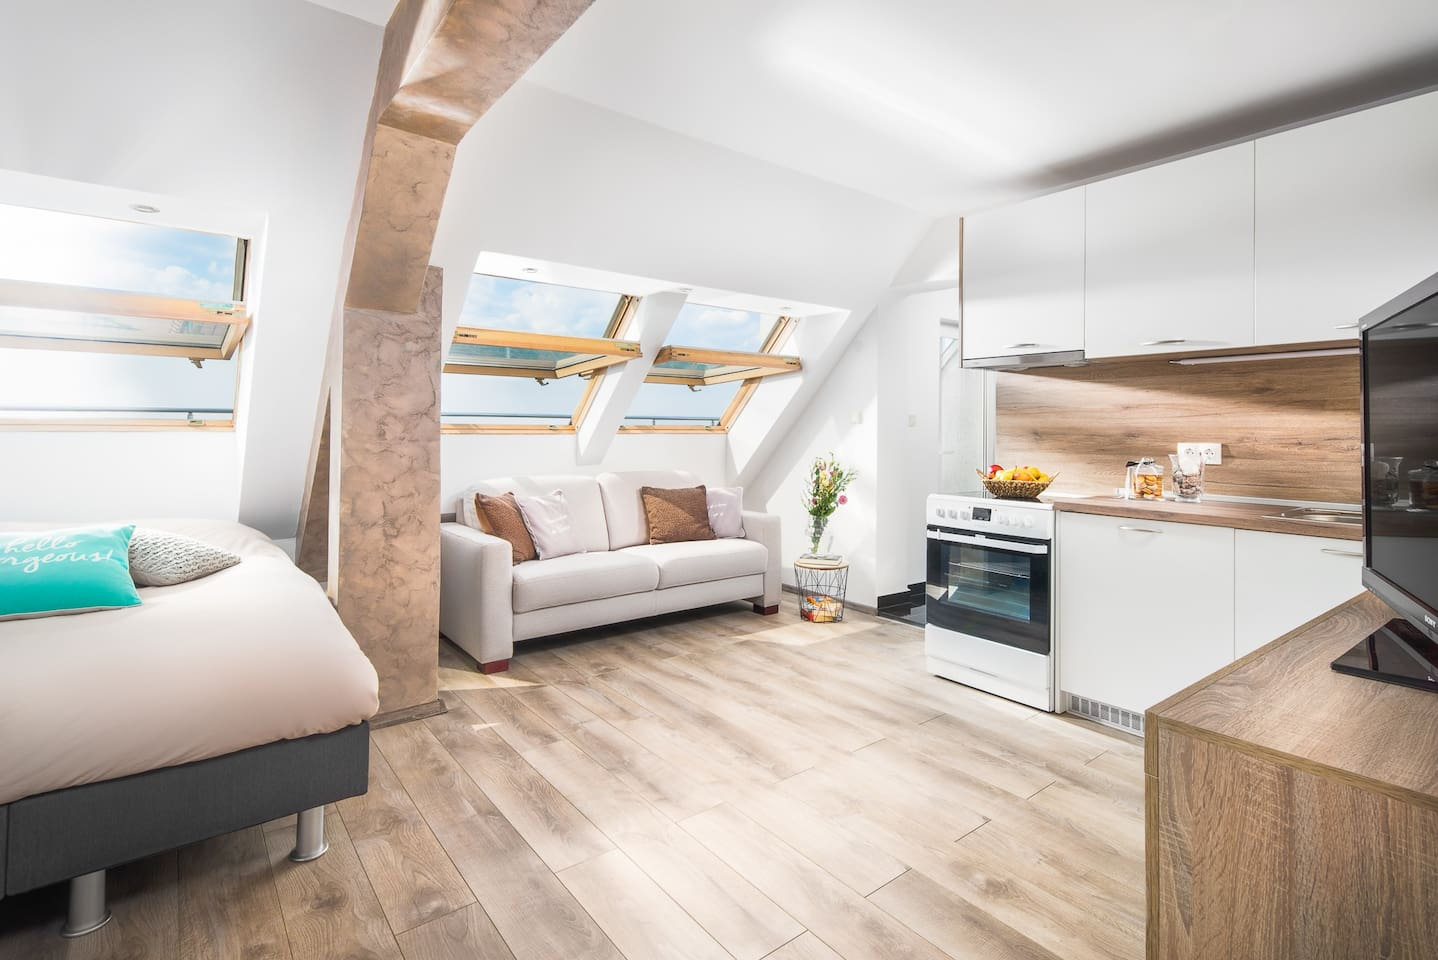 Apartment 'Zonnebloem' welcomes you with sunny and warm atmosphere